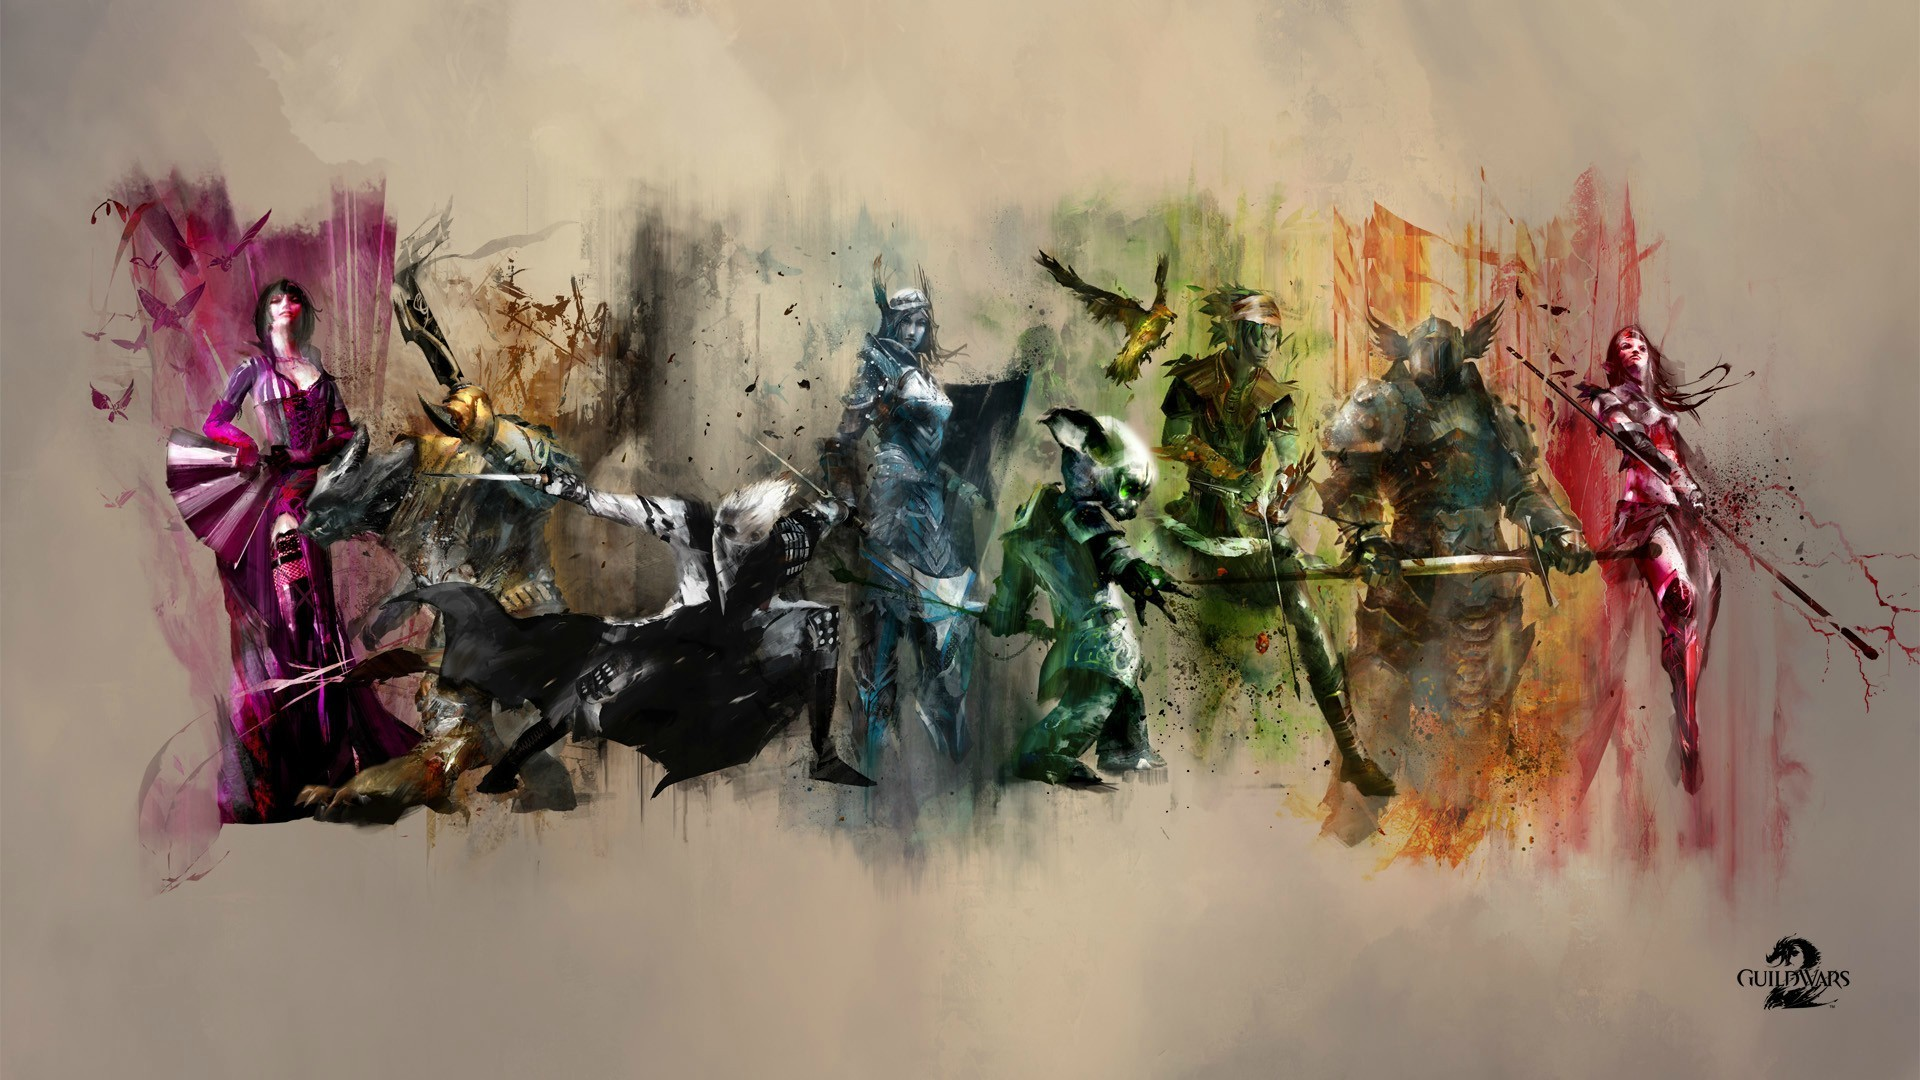 1920x1080 guild wars 2 hd background hd wallpapers cool images free background  wallpapers colourful pictures desktop wallpapers 1080p 1920×1080 Wallpaper  HD